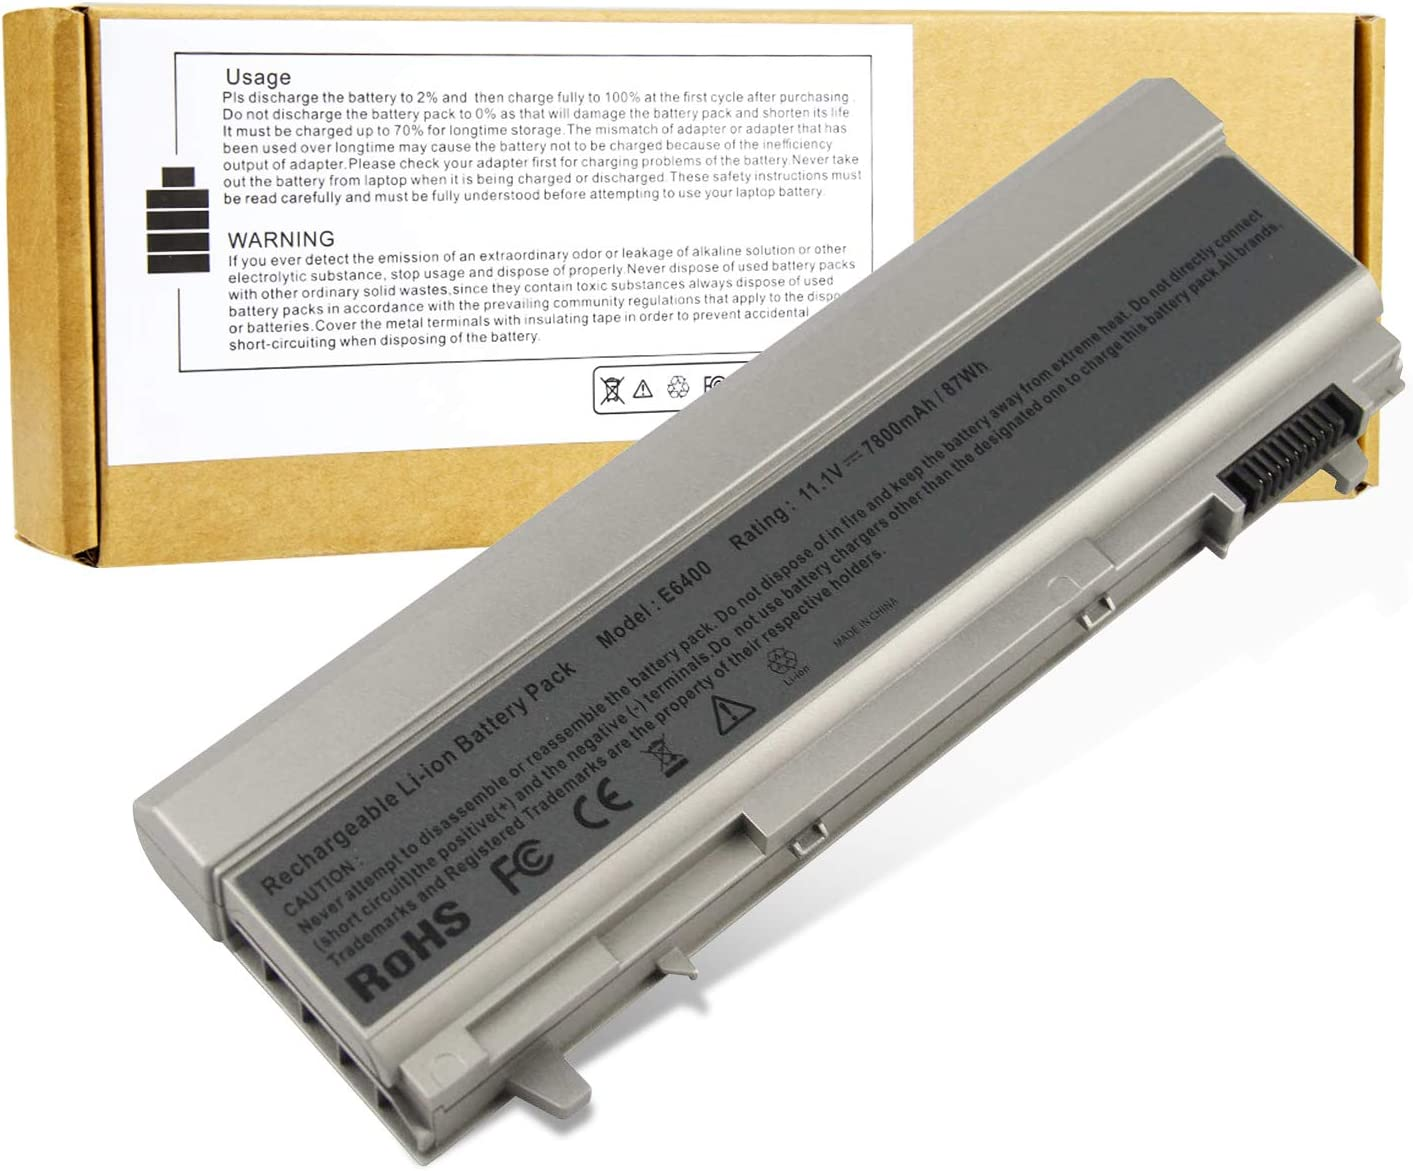 9 Cell Laptop Battery Replace for Dell Latitude E6400 E6410 E6500 E6510 MP490 4m529 pt434 ky265 312-0749 4N369 MP303 – High Performance